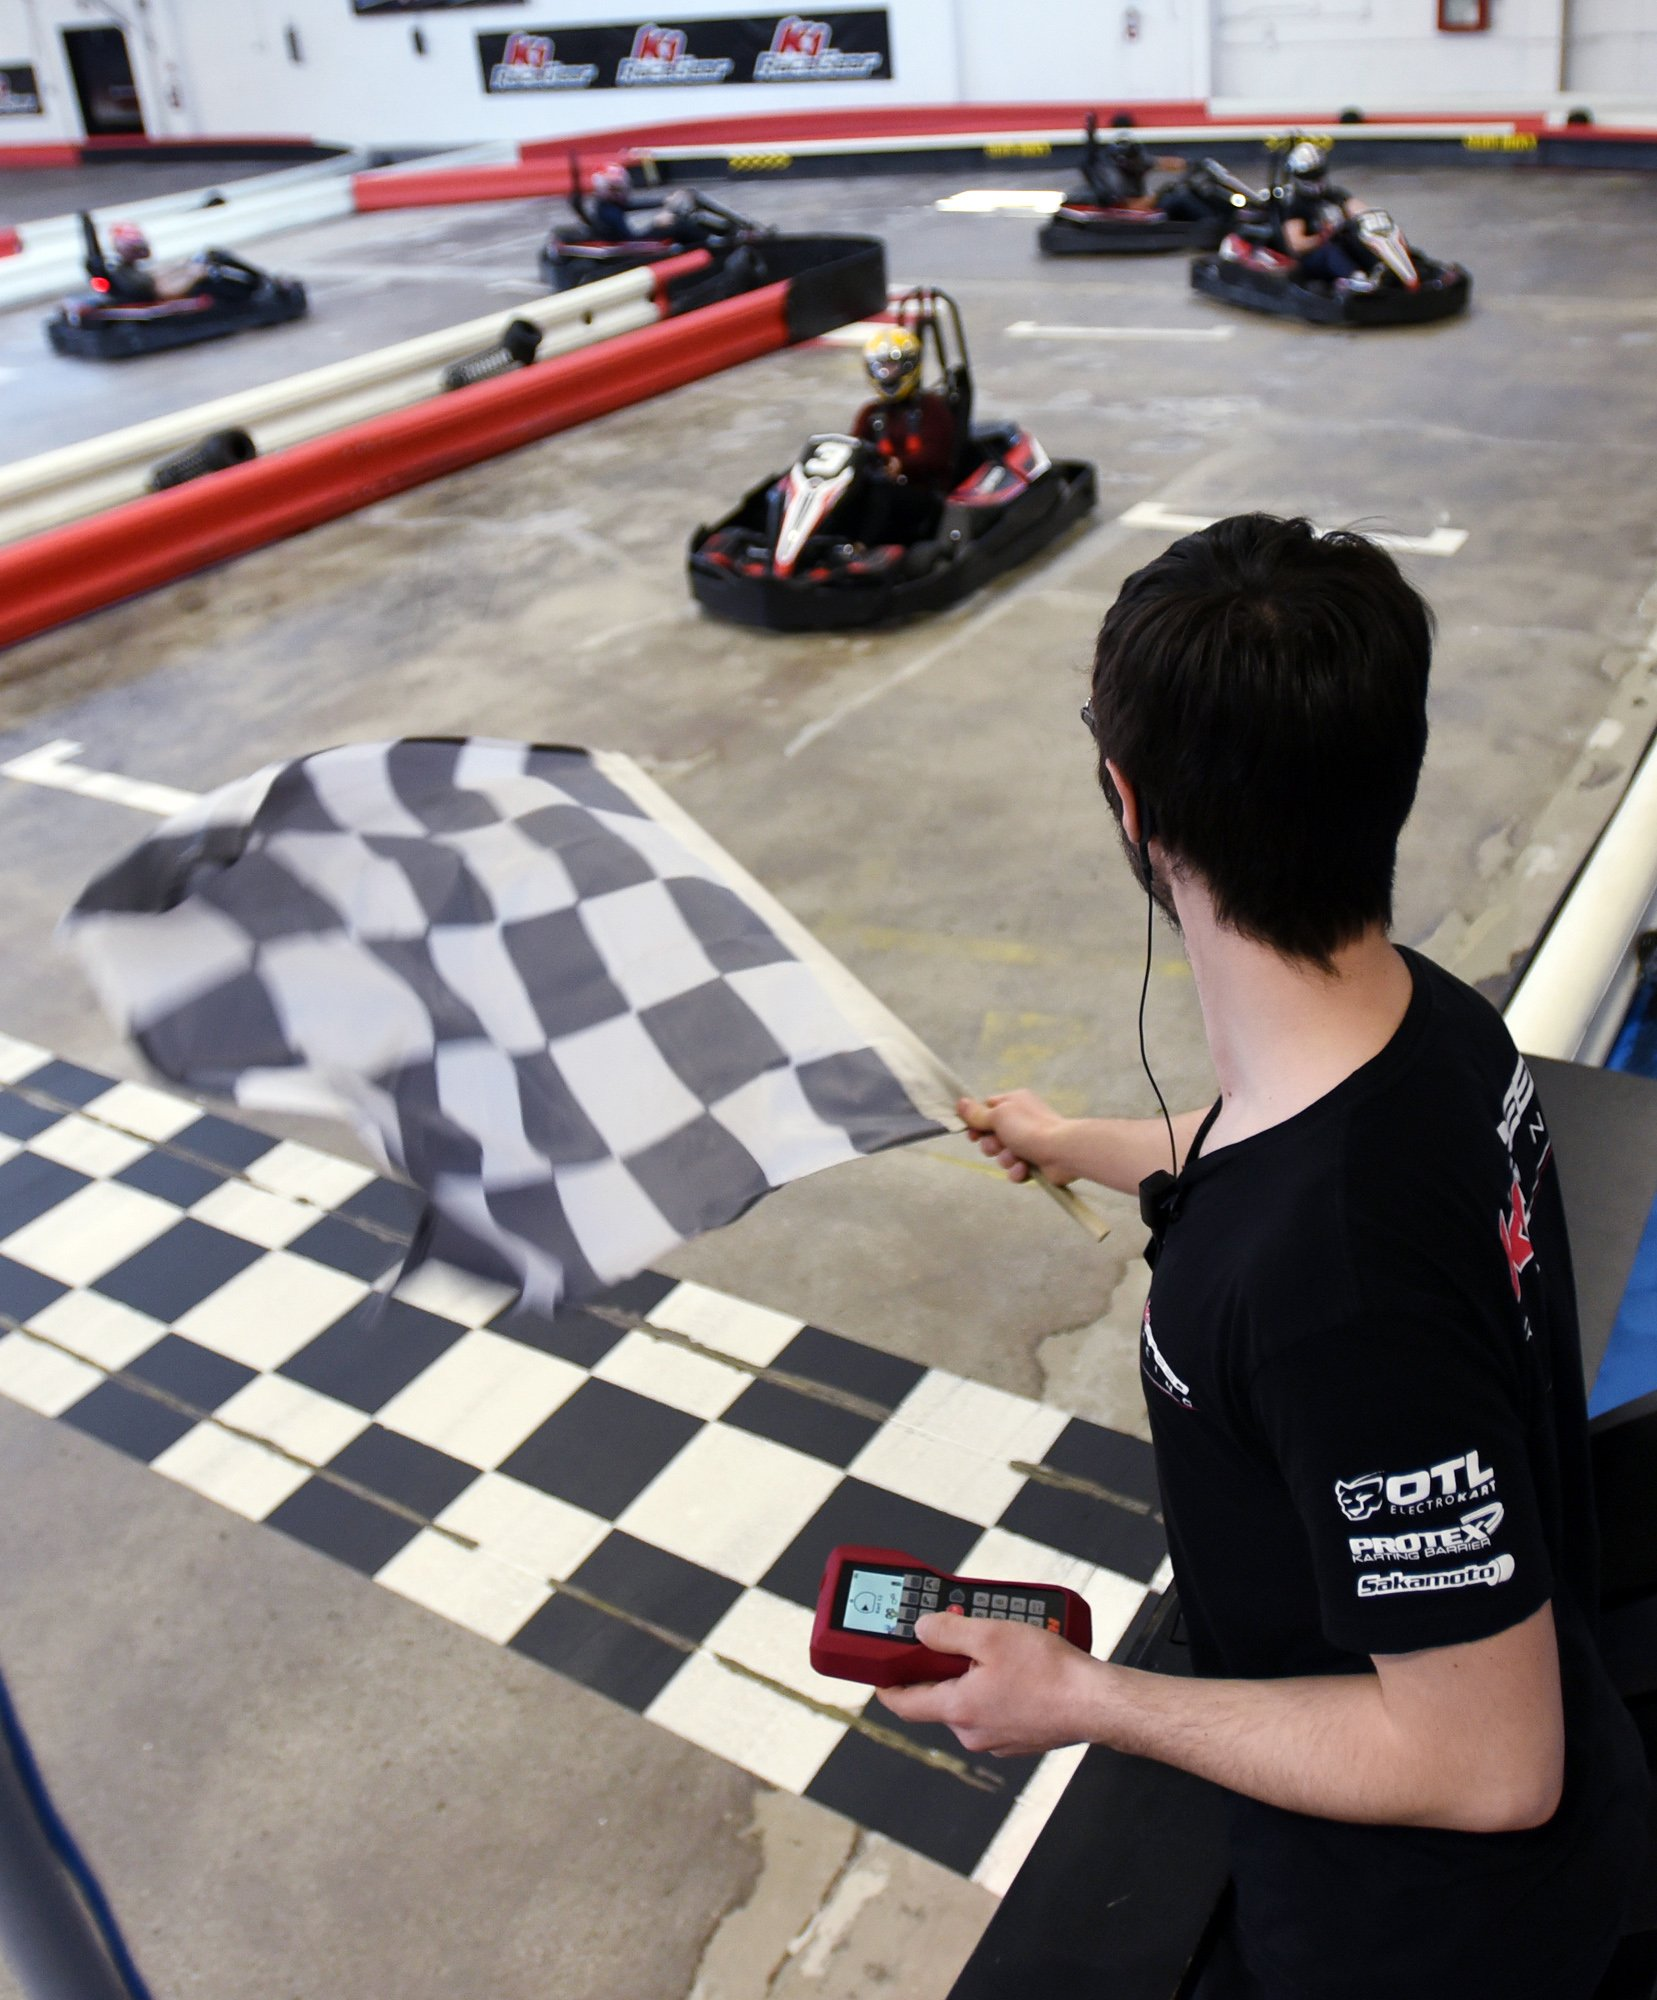 Go-karts at K1 Speed in Downsview Park can hit 70 km/h | Toronto com